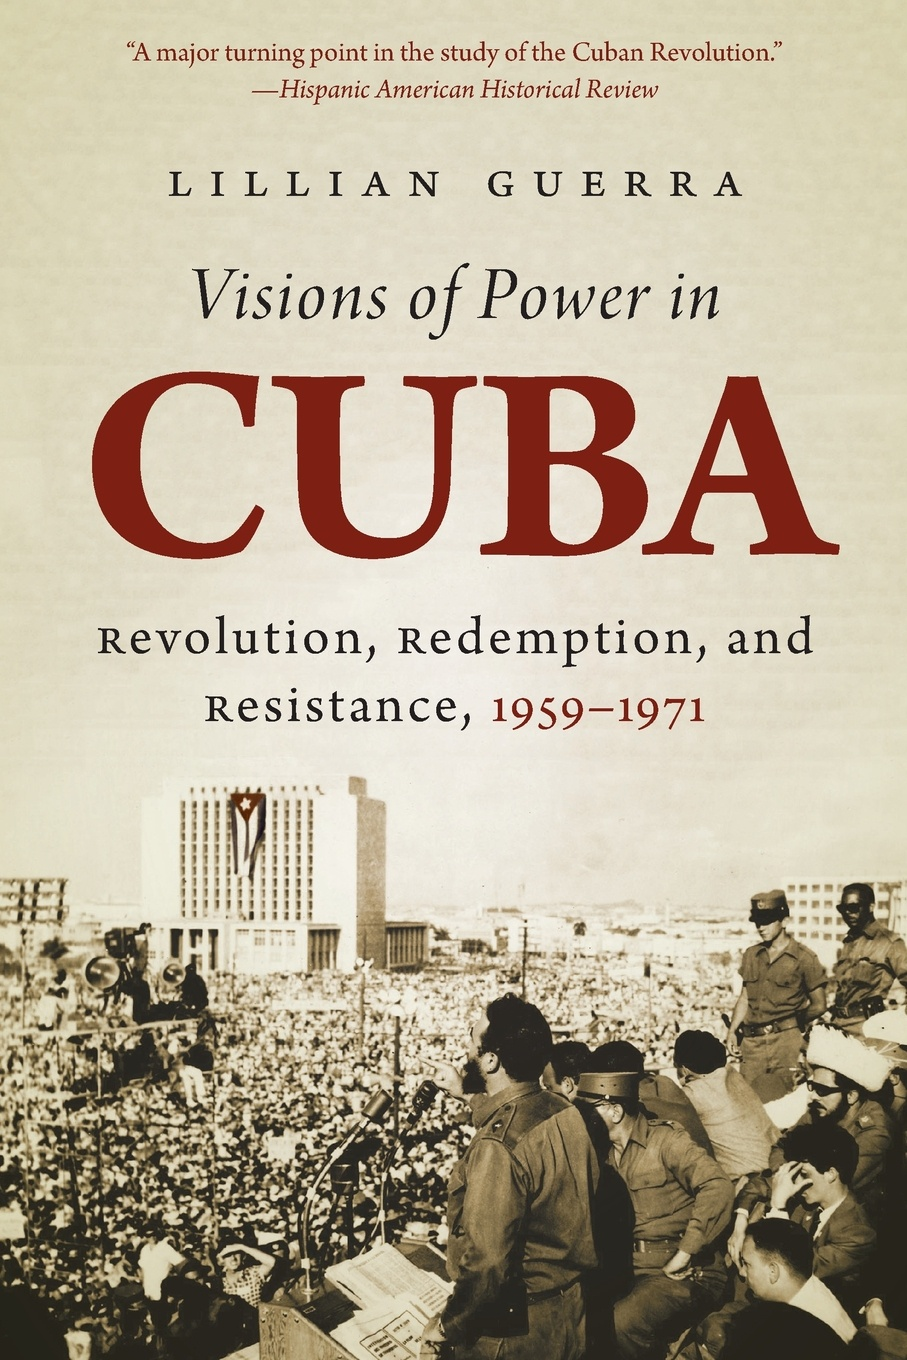 Lillian Guerra Visions of Power in Cuba. Revolution, Redemption, and Resistance, 1959-1971 недорого